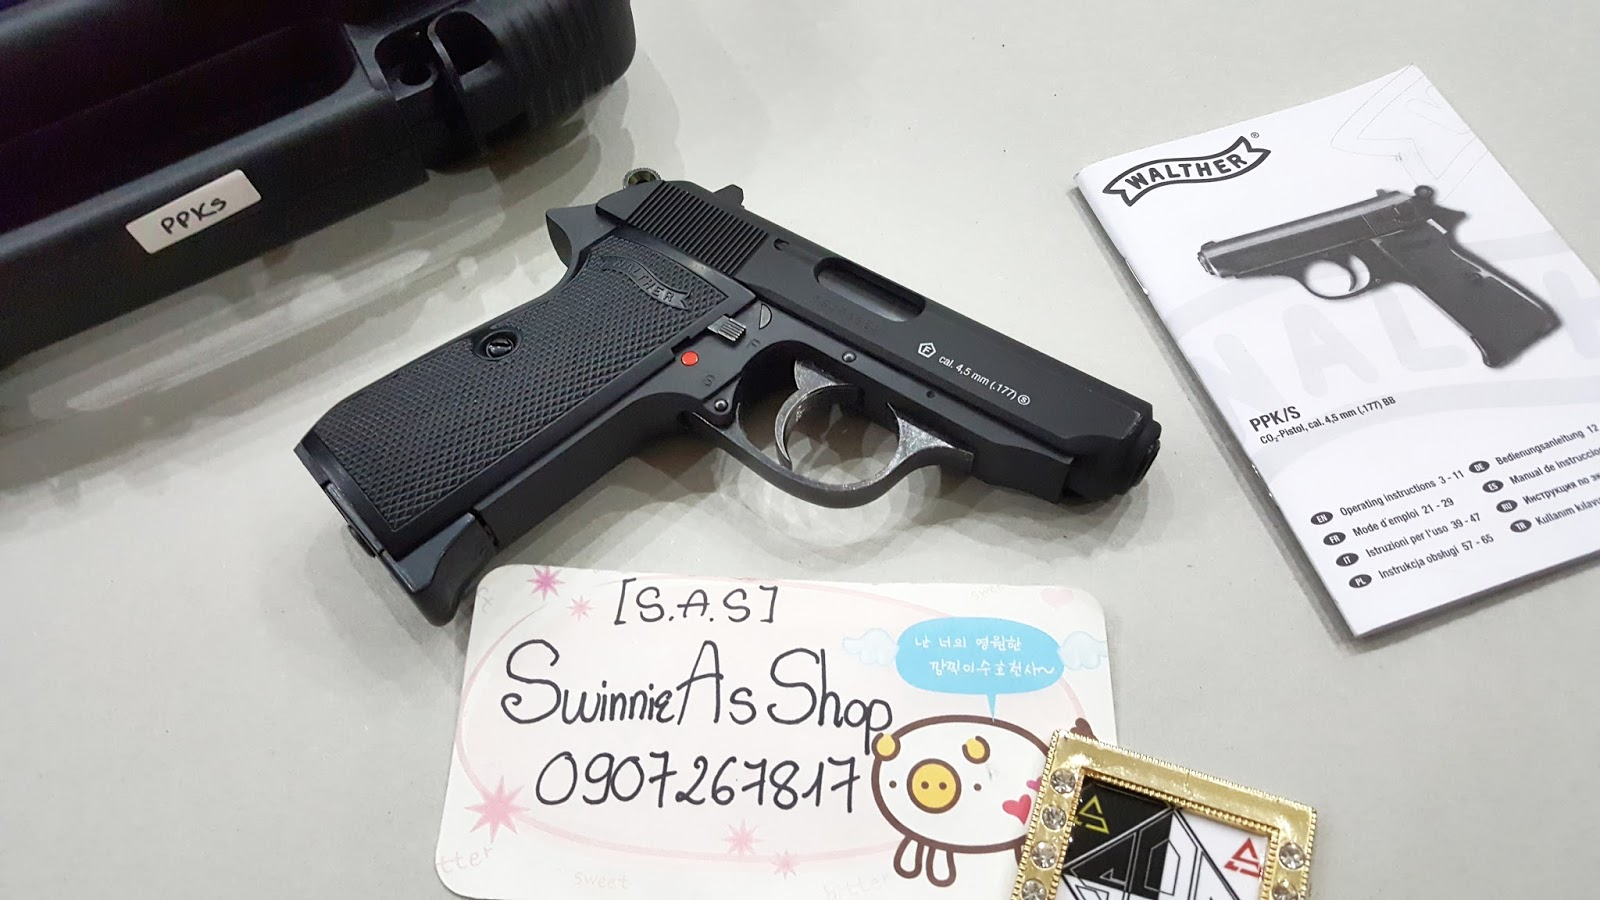 ... Array - co2 usa umarex walther ppk s 4 5mm co2 pistol swinnie as shop rh